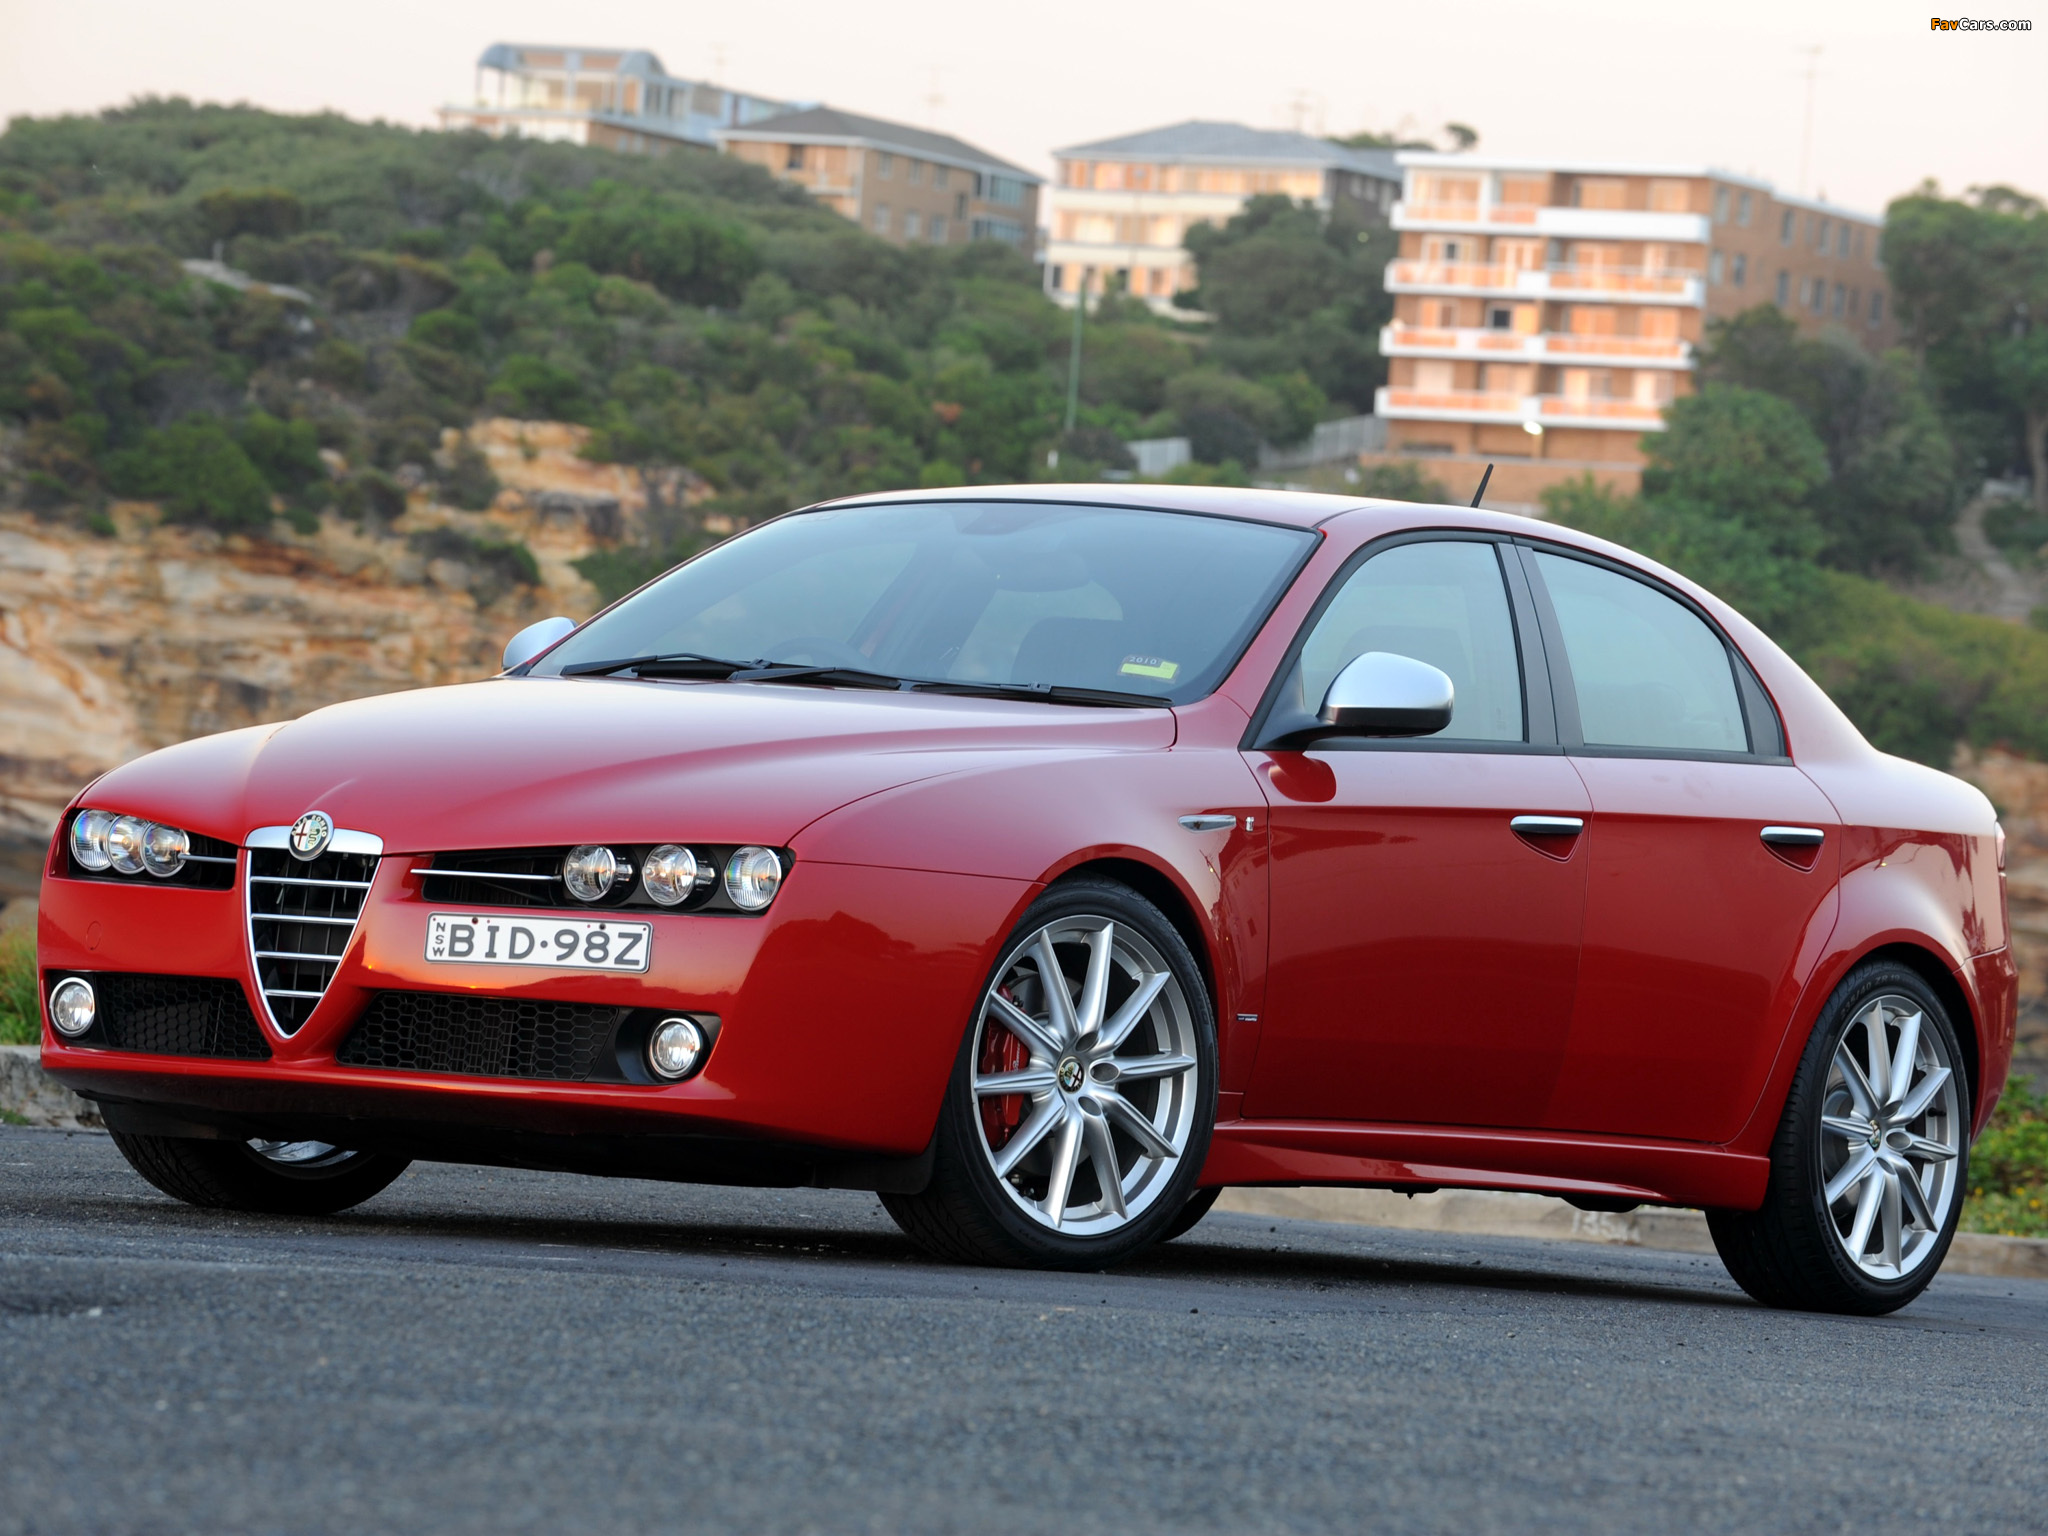 alfa romeo 159 ti au spec 939a 2008 2011 wallpapers. Black Bedroom Furniture Sets. Home Design Ideas